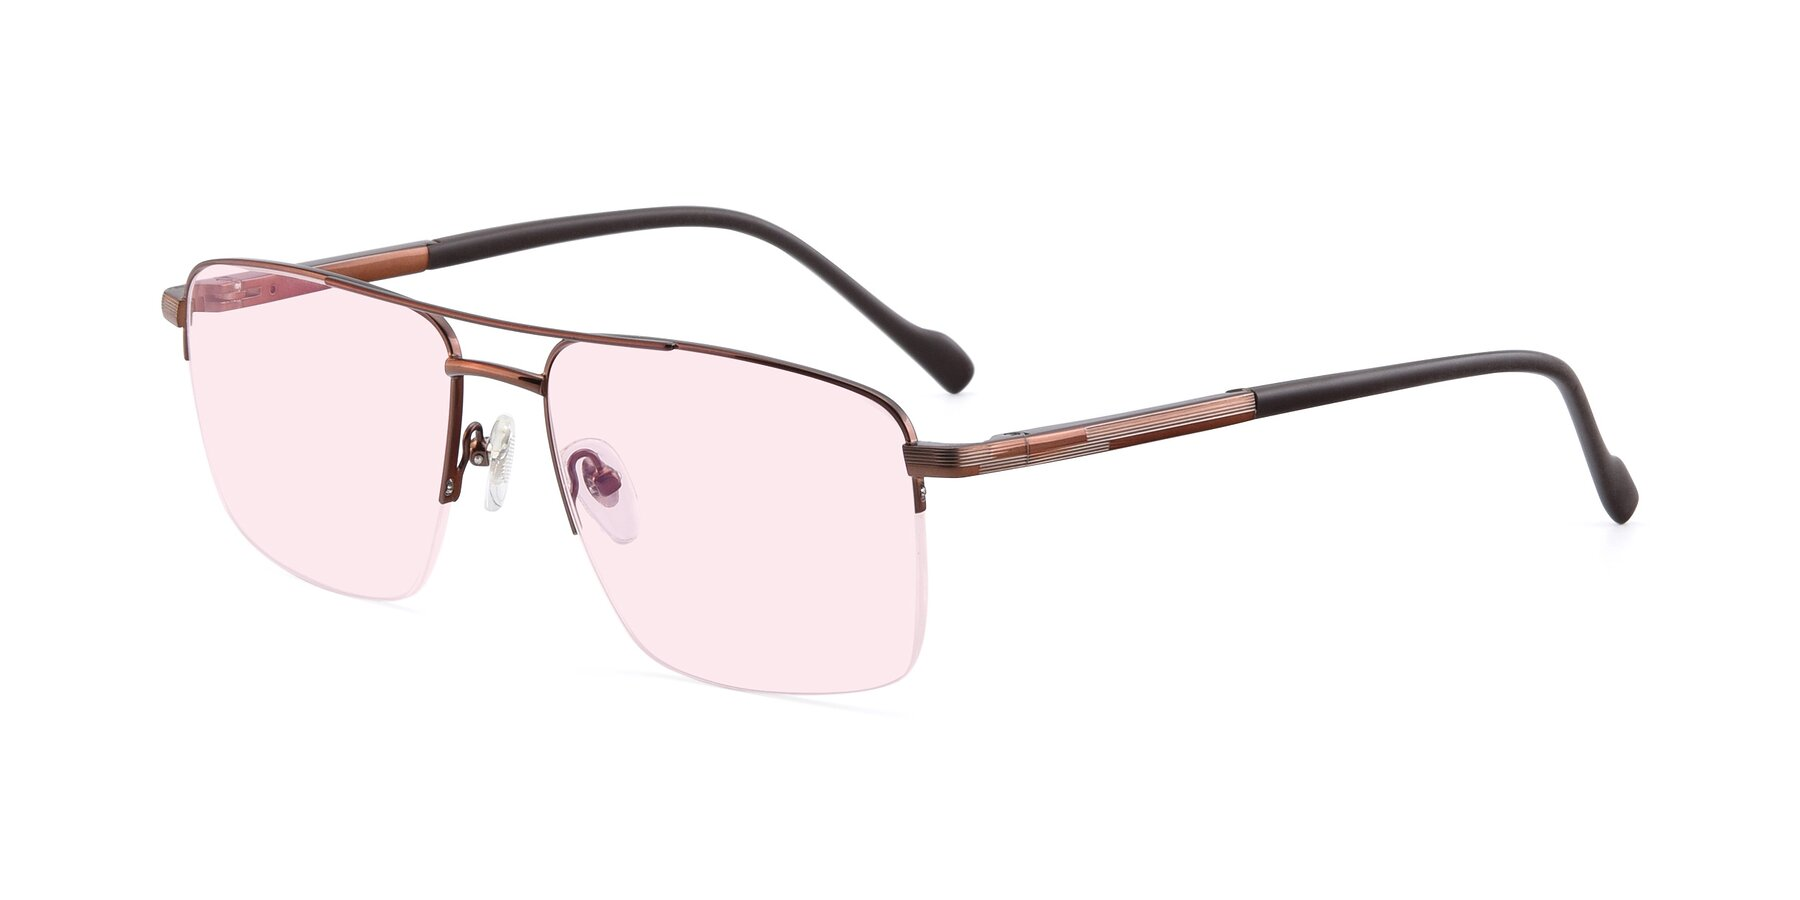 Angle of 19013 in Bronze with Light Pink Tinted Lenses